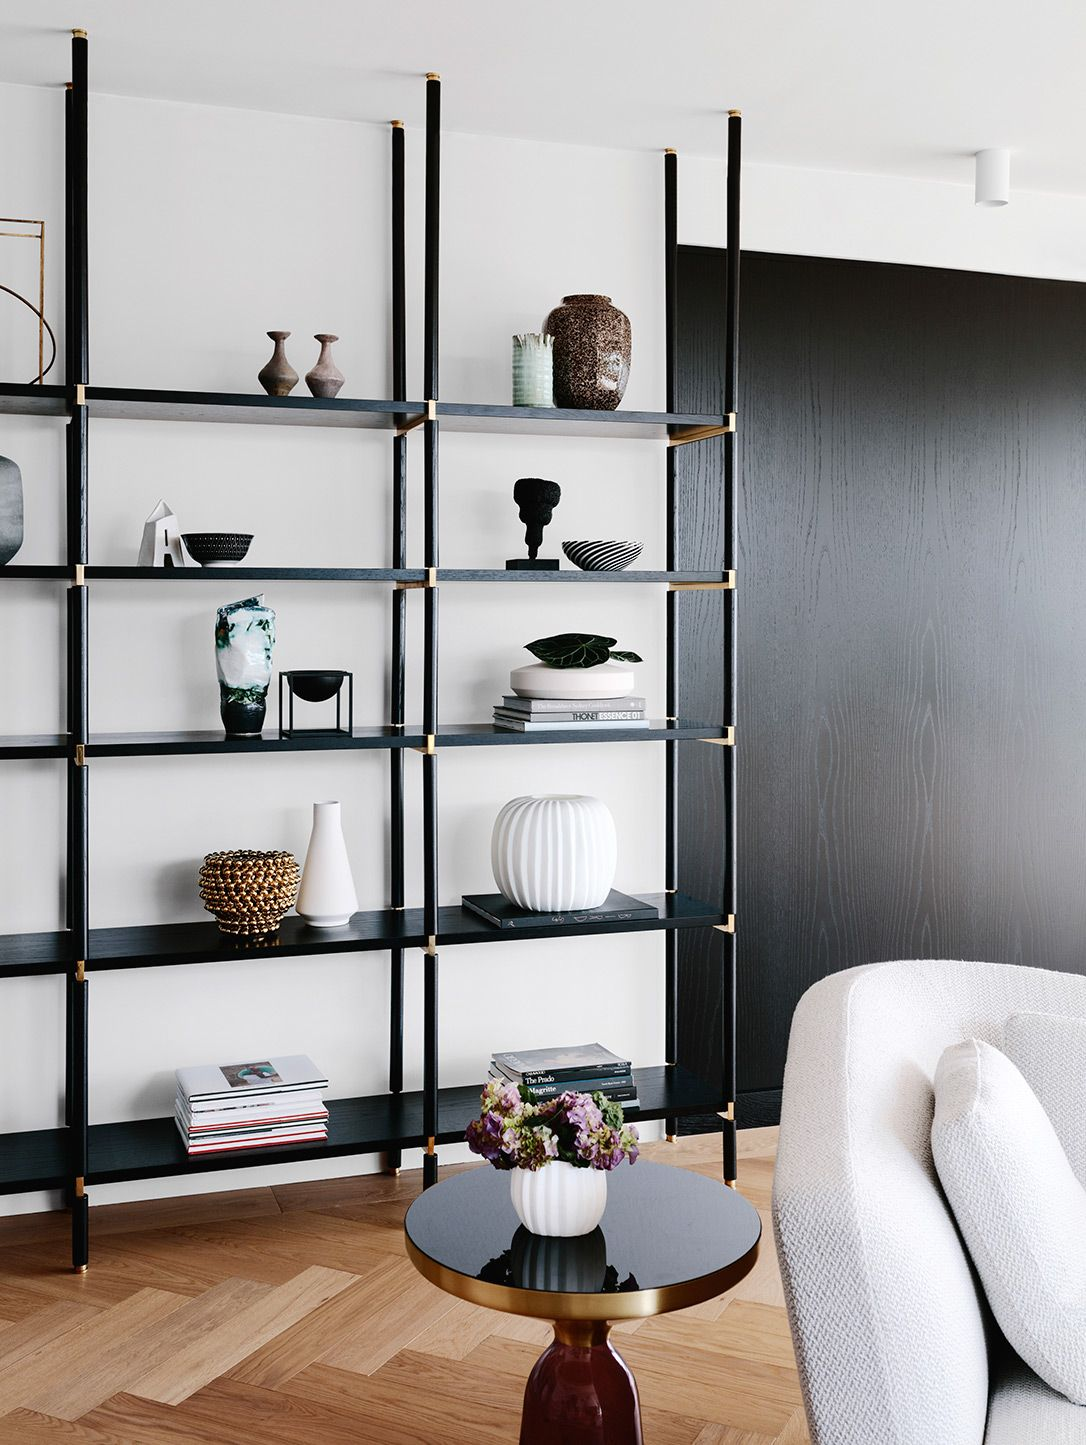 10 Stylish and Clever Living Room Storage Ideas